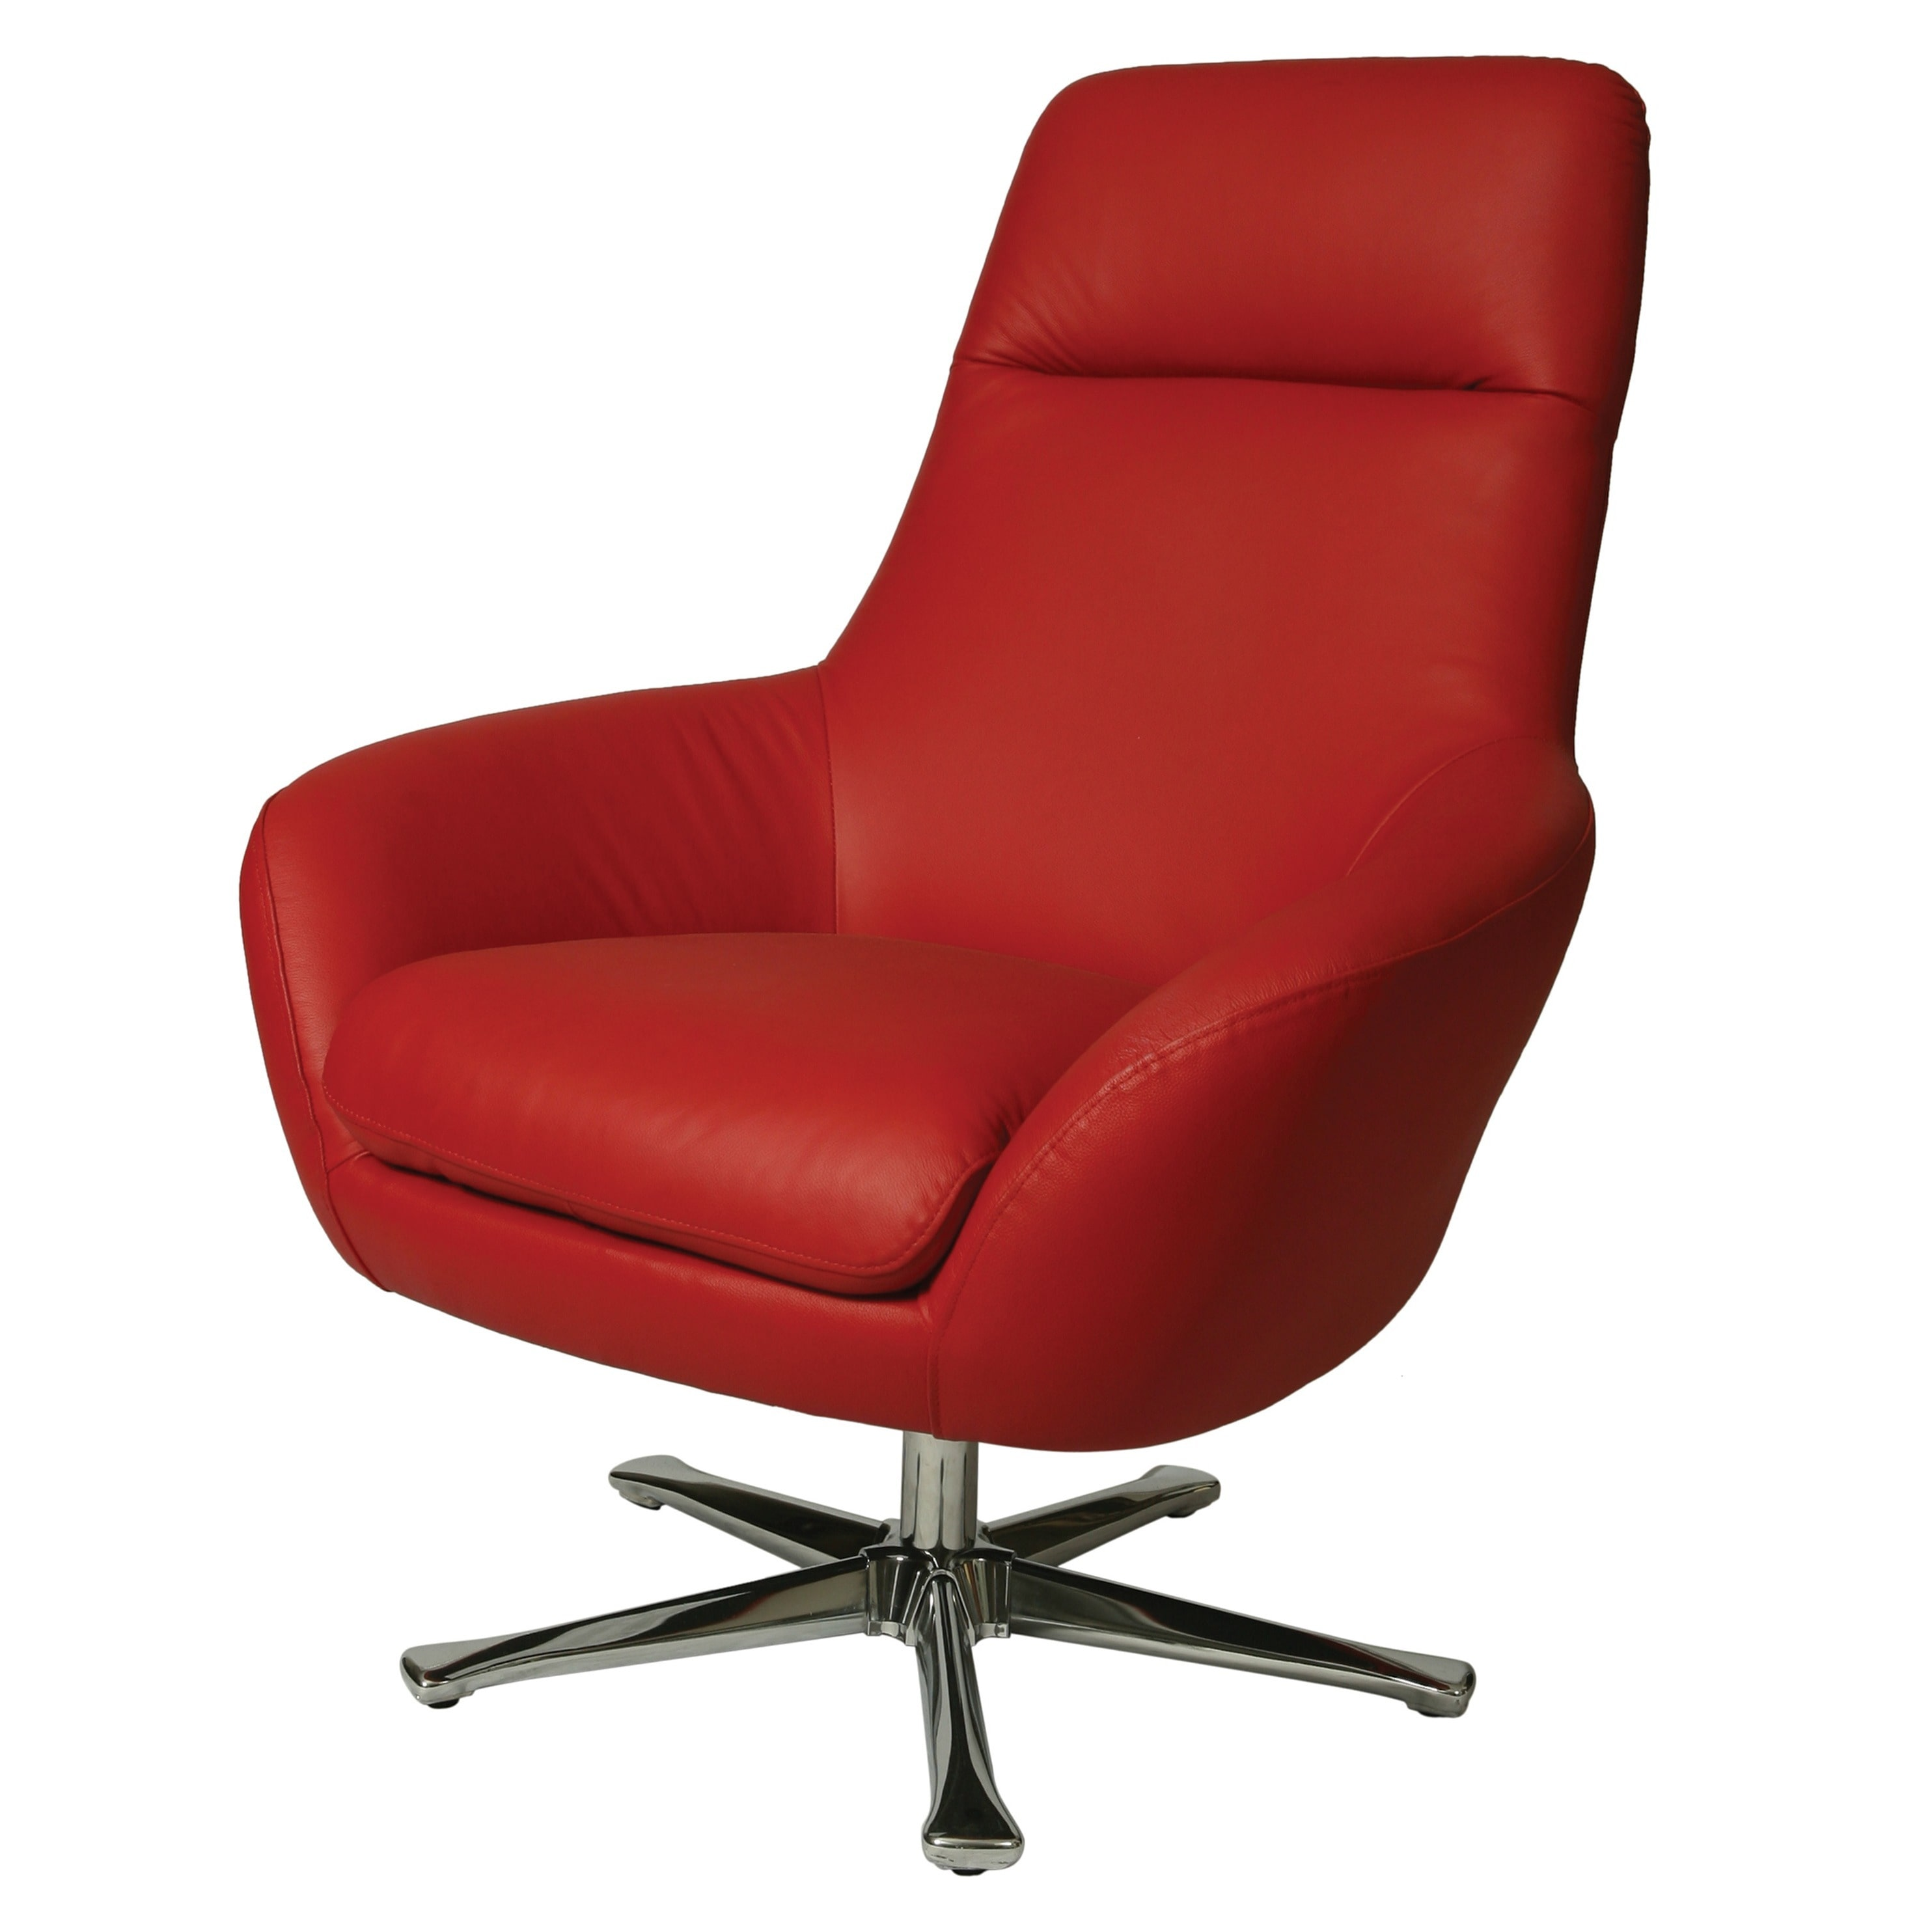 Pastel Furniture Ellejoyce Red Leather Club Chair by Overstock